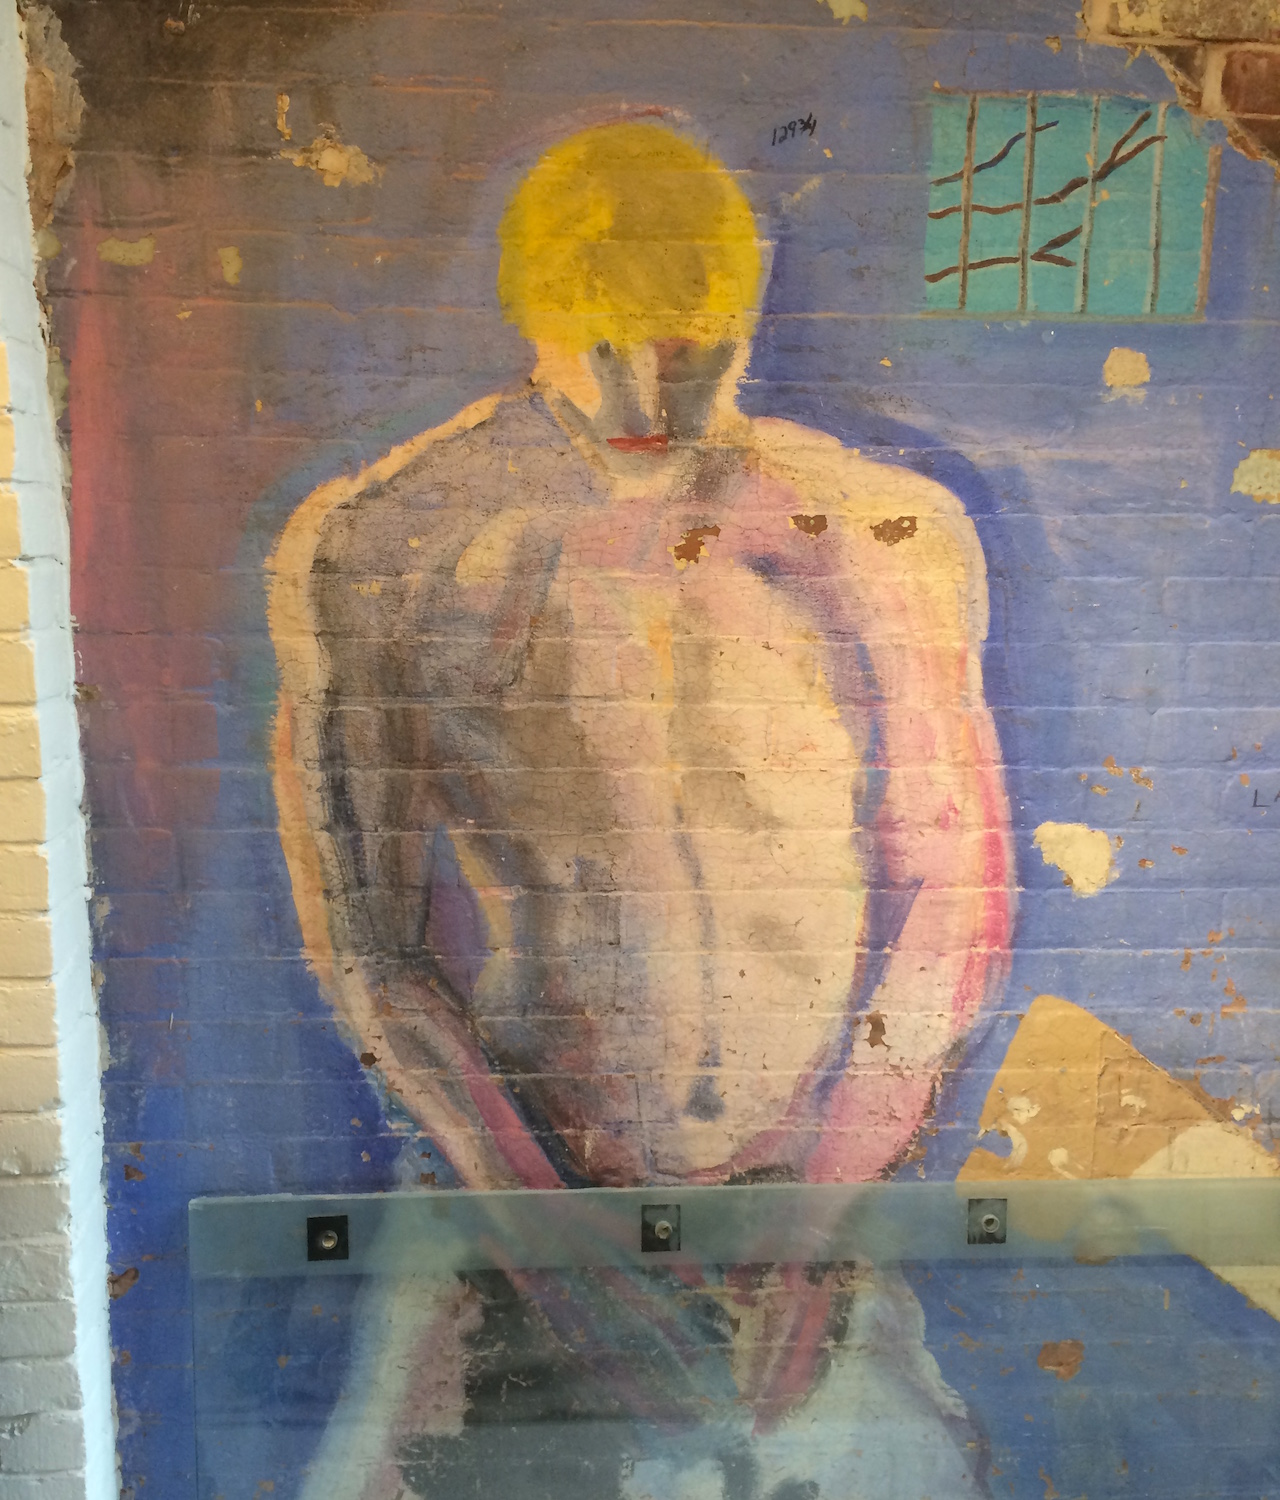 """Stephen Lack, """"Boy on Wall"""" (1989), at the LGBT Center"""